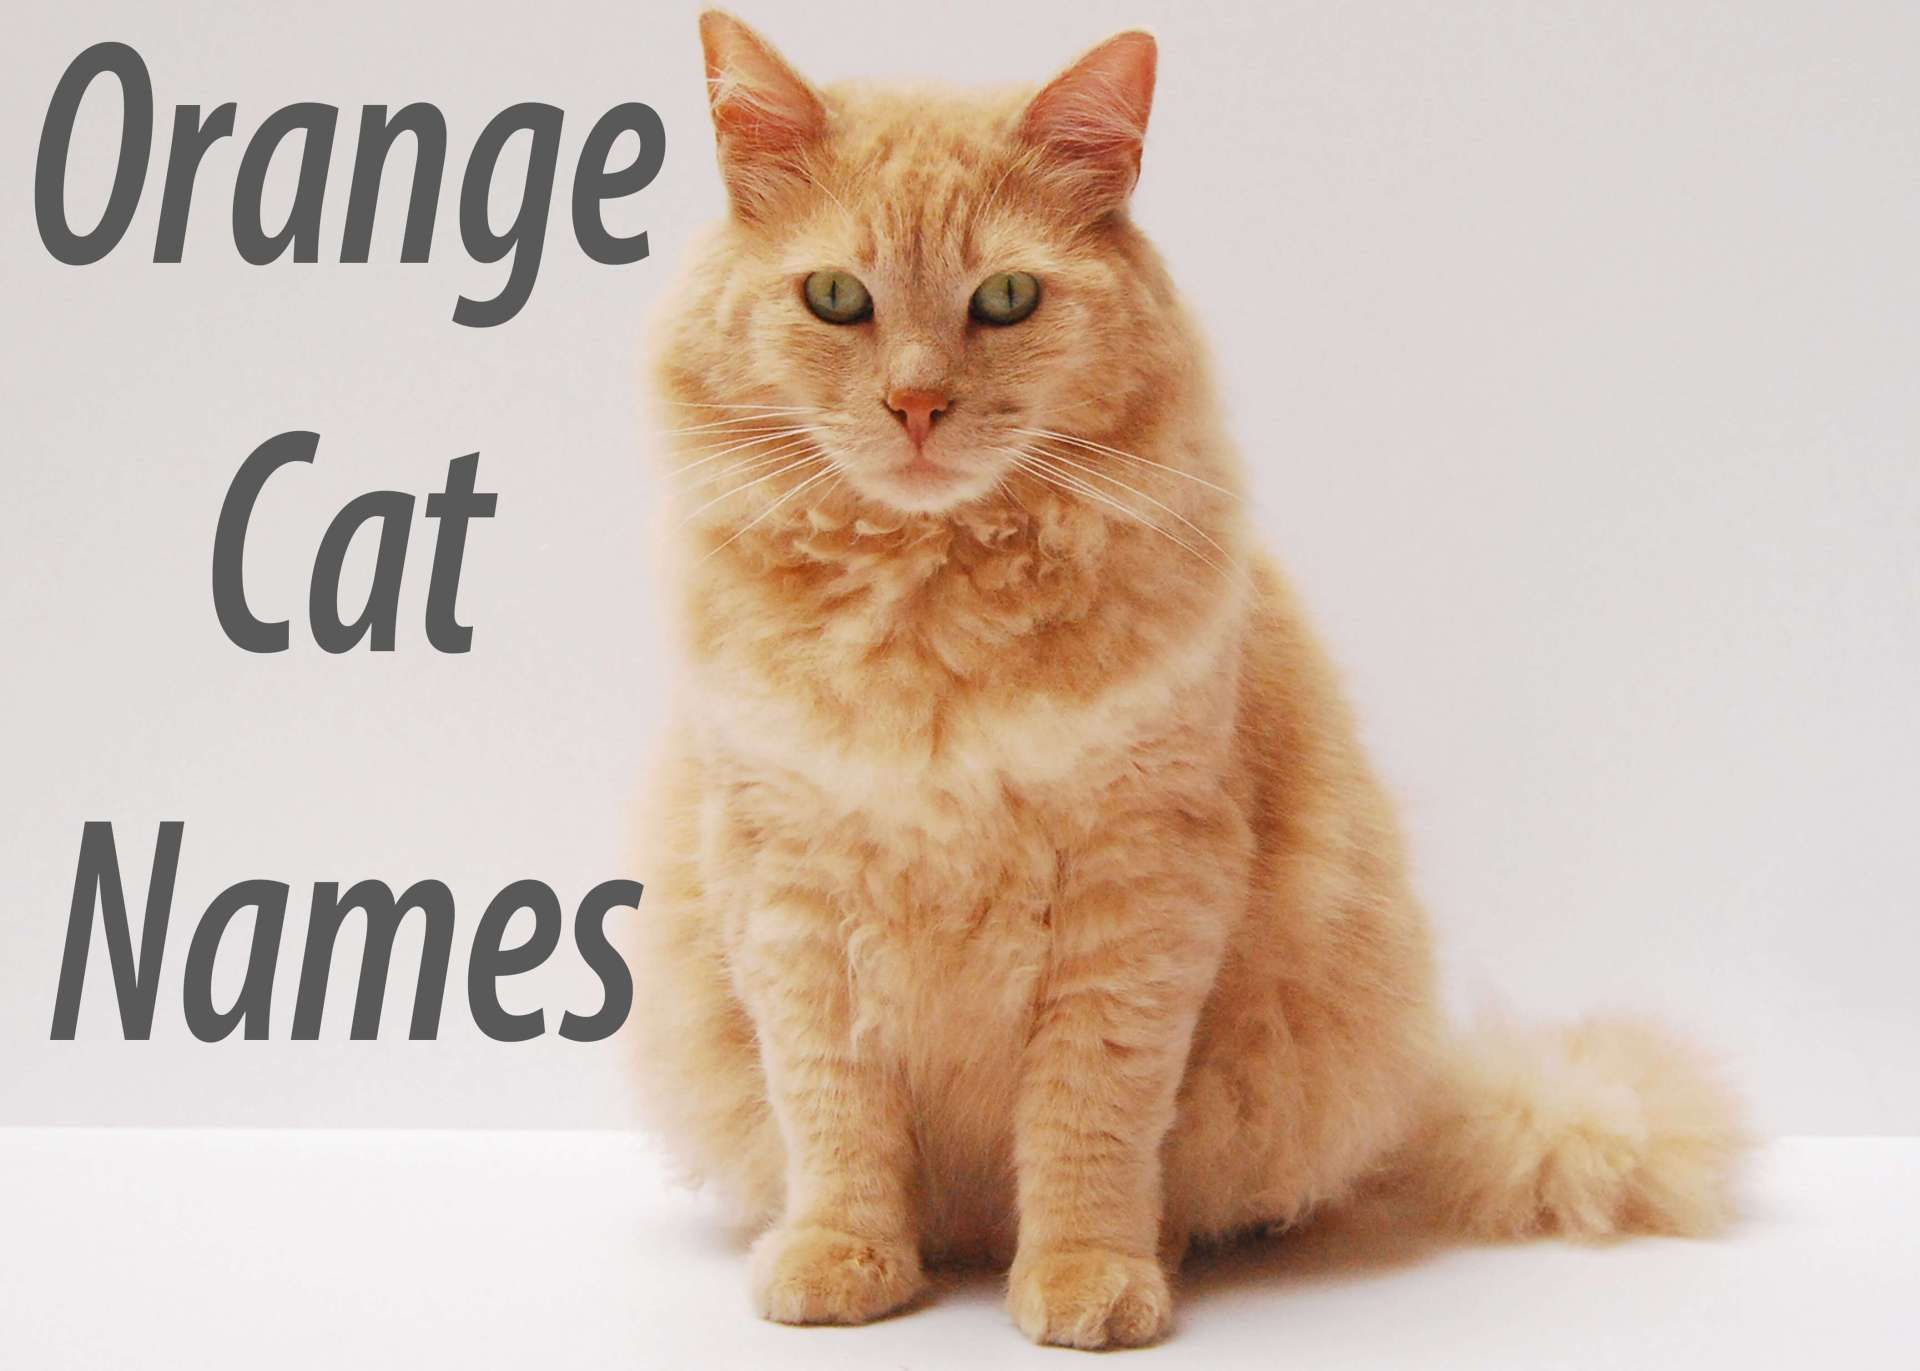 200 Most Popular Orange Names Cat names, Cute cat names